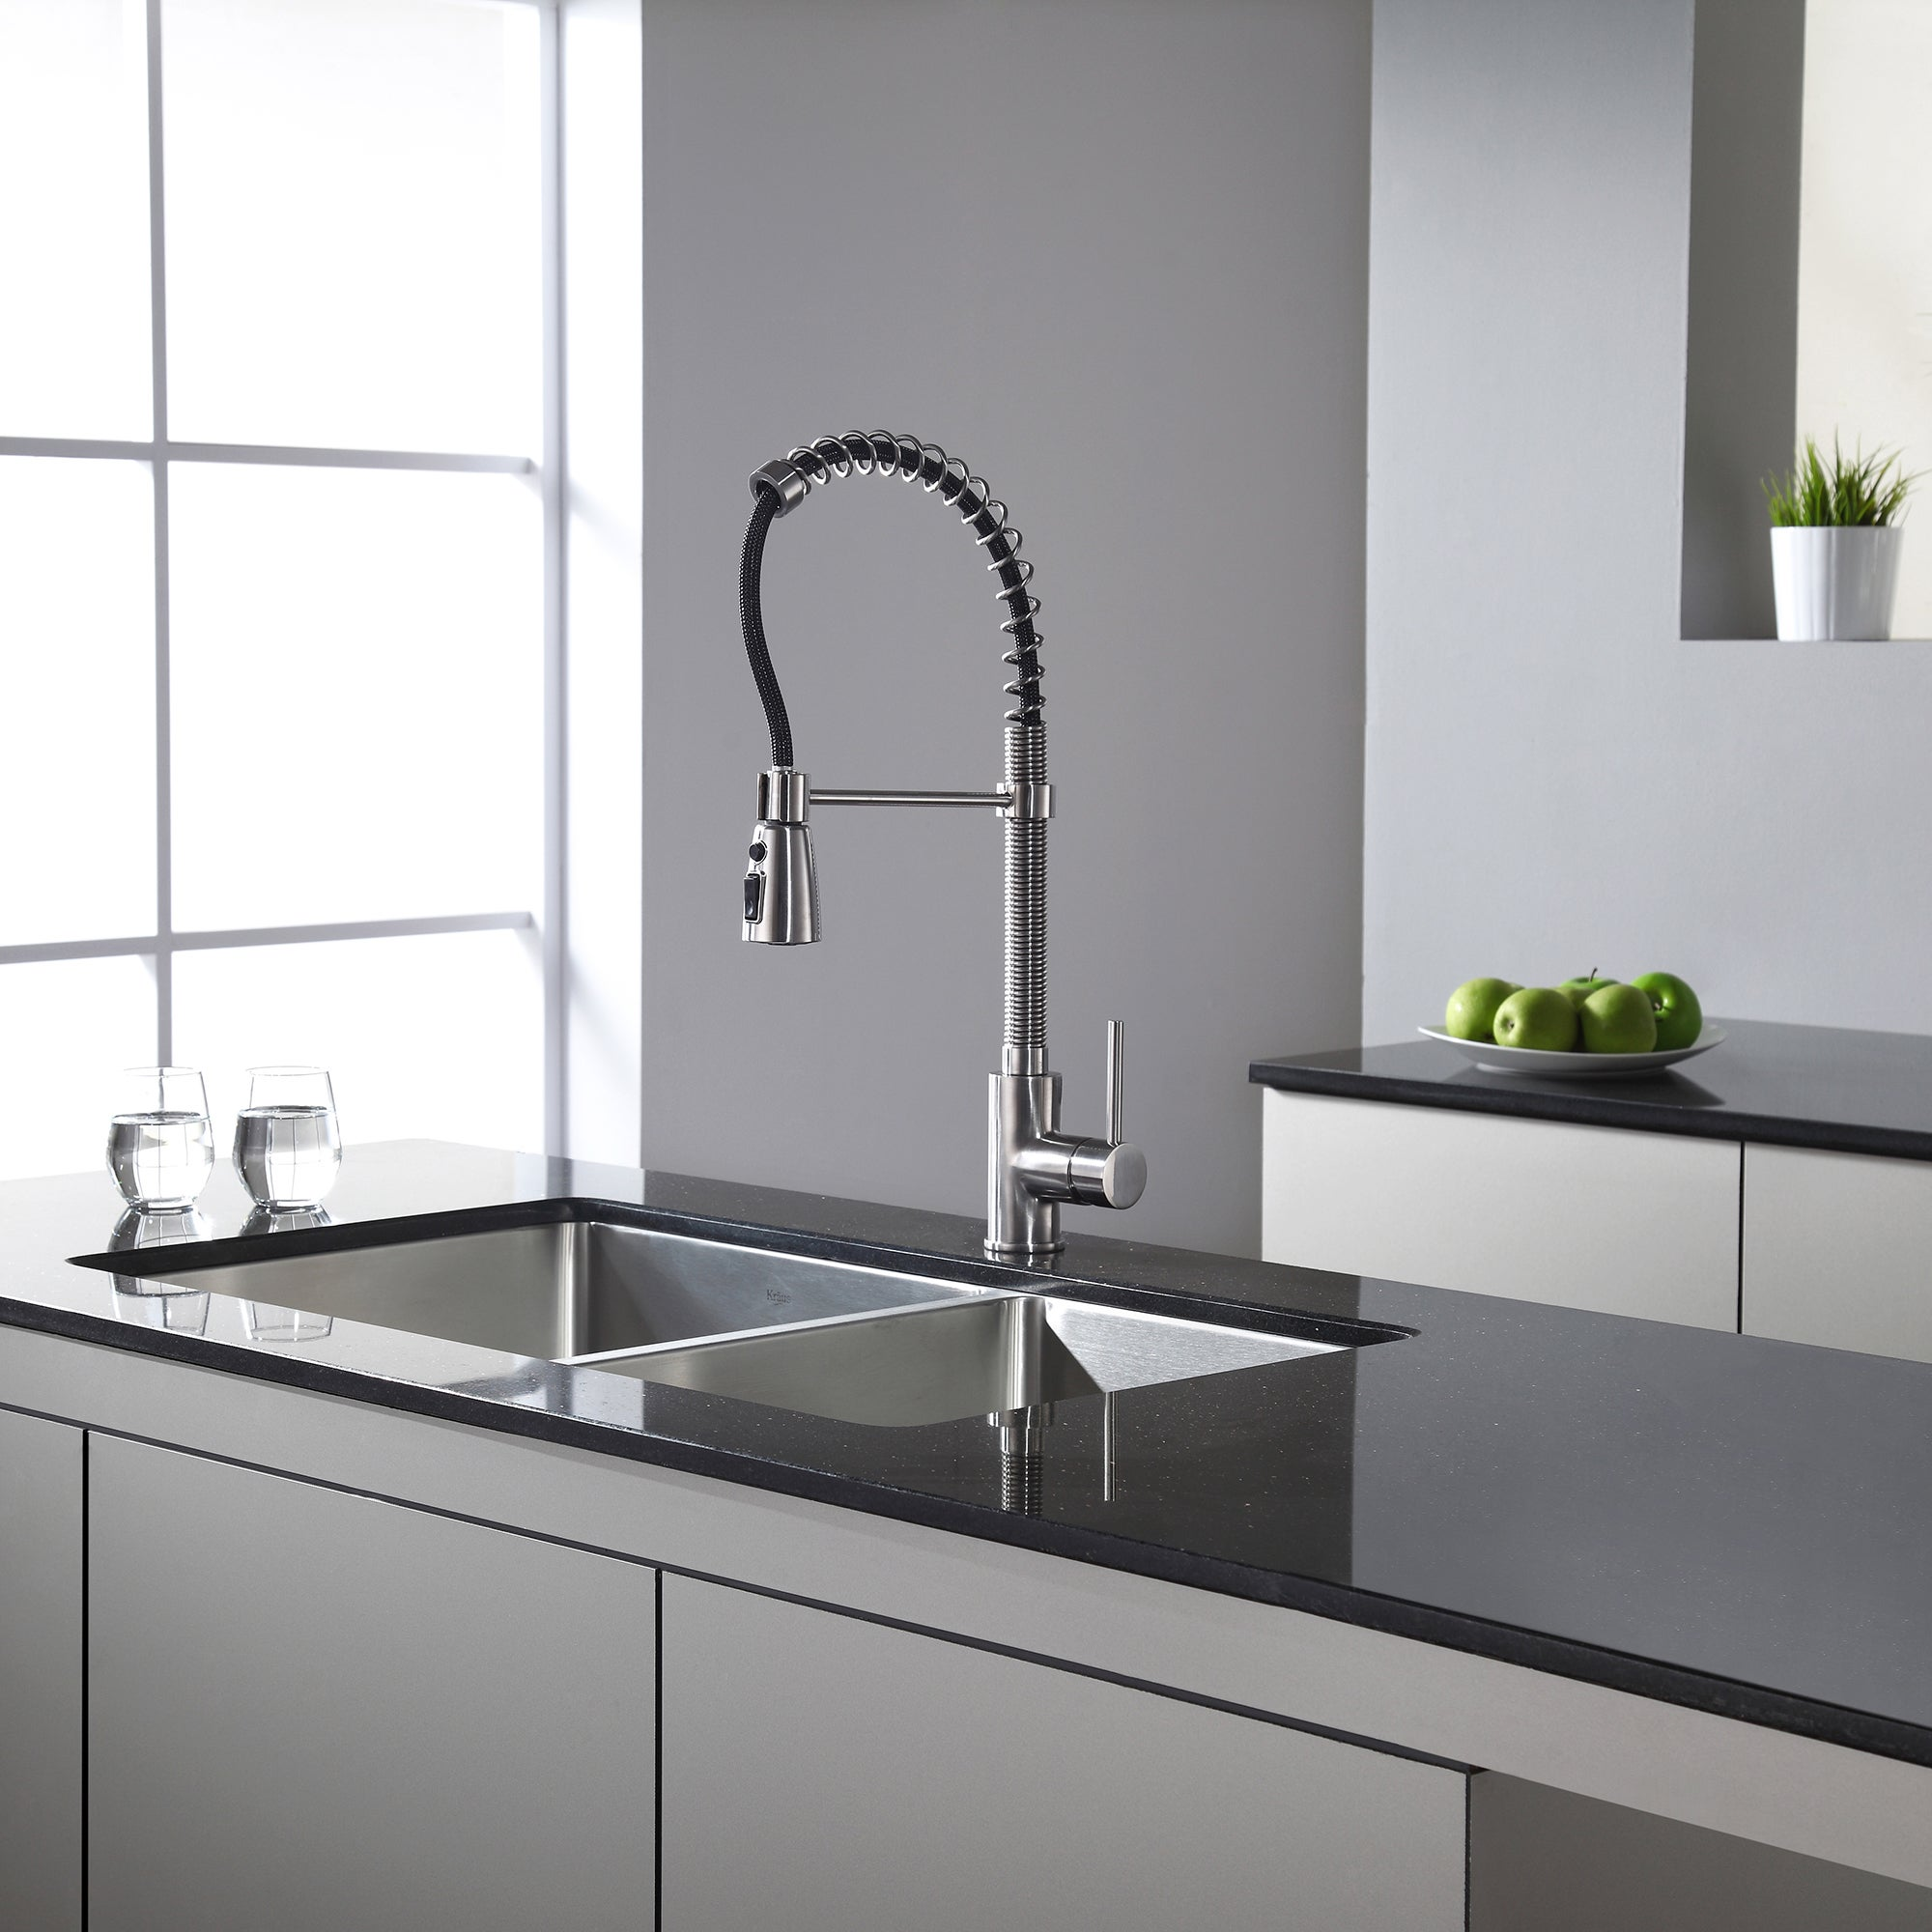 KRAUS Commercial-Style Single-Handle Kitchen Faucet with Pull Down  Three-Function Sprayer - Free Shipping Today - Overstock.com - 11345066